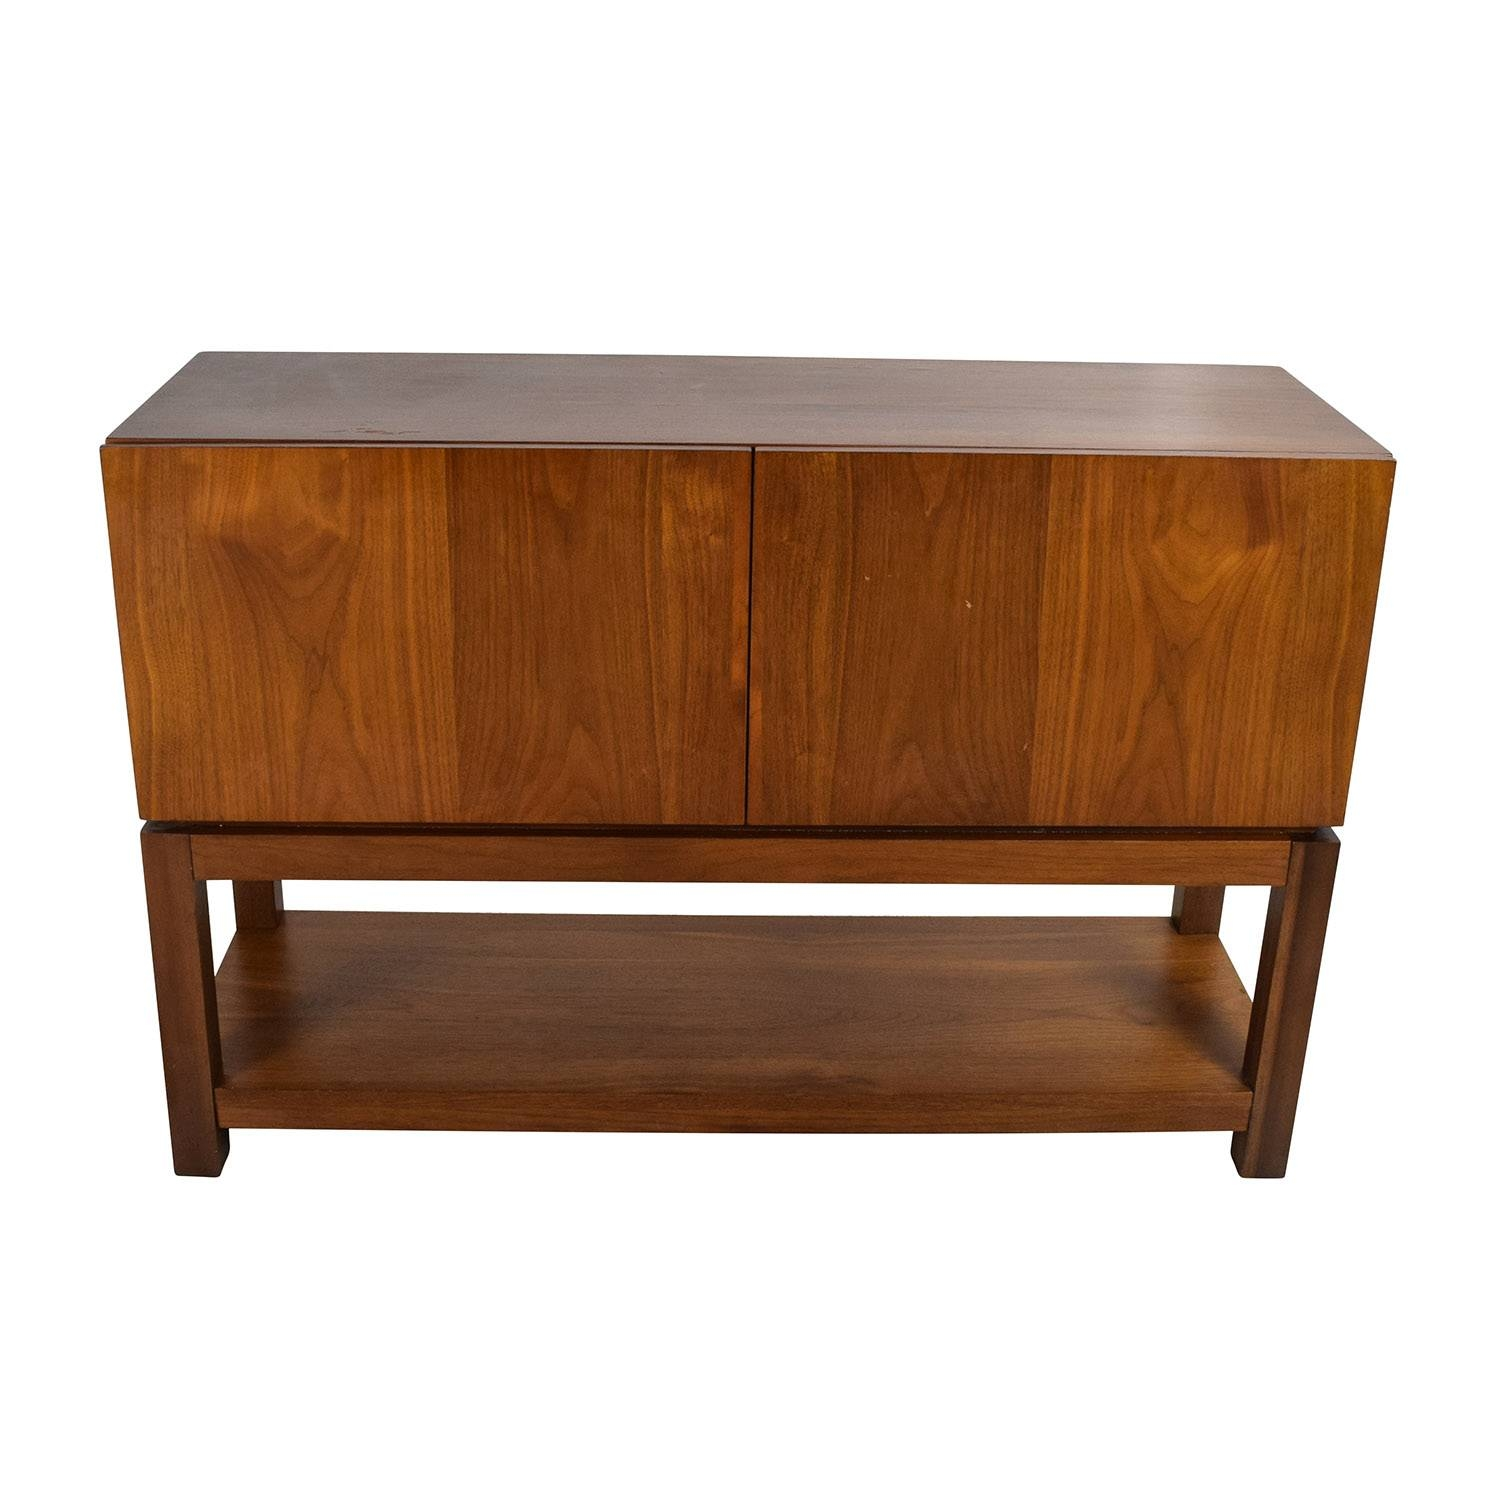 59% Off - West Elm West Elm Parsons Buffet / Storage intended for West Elm Sideboards (Image 2 of 15)